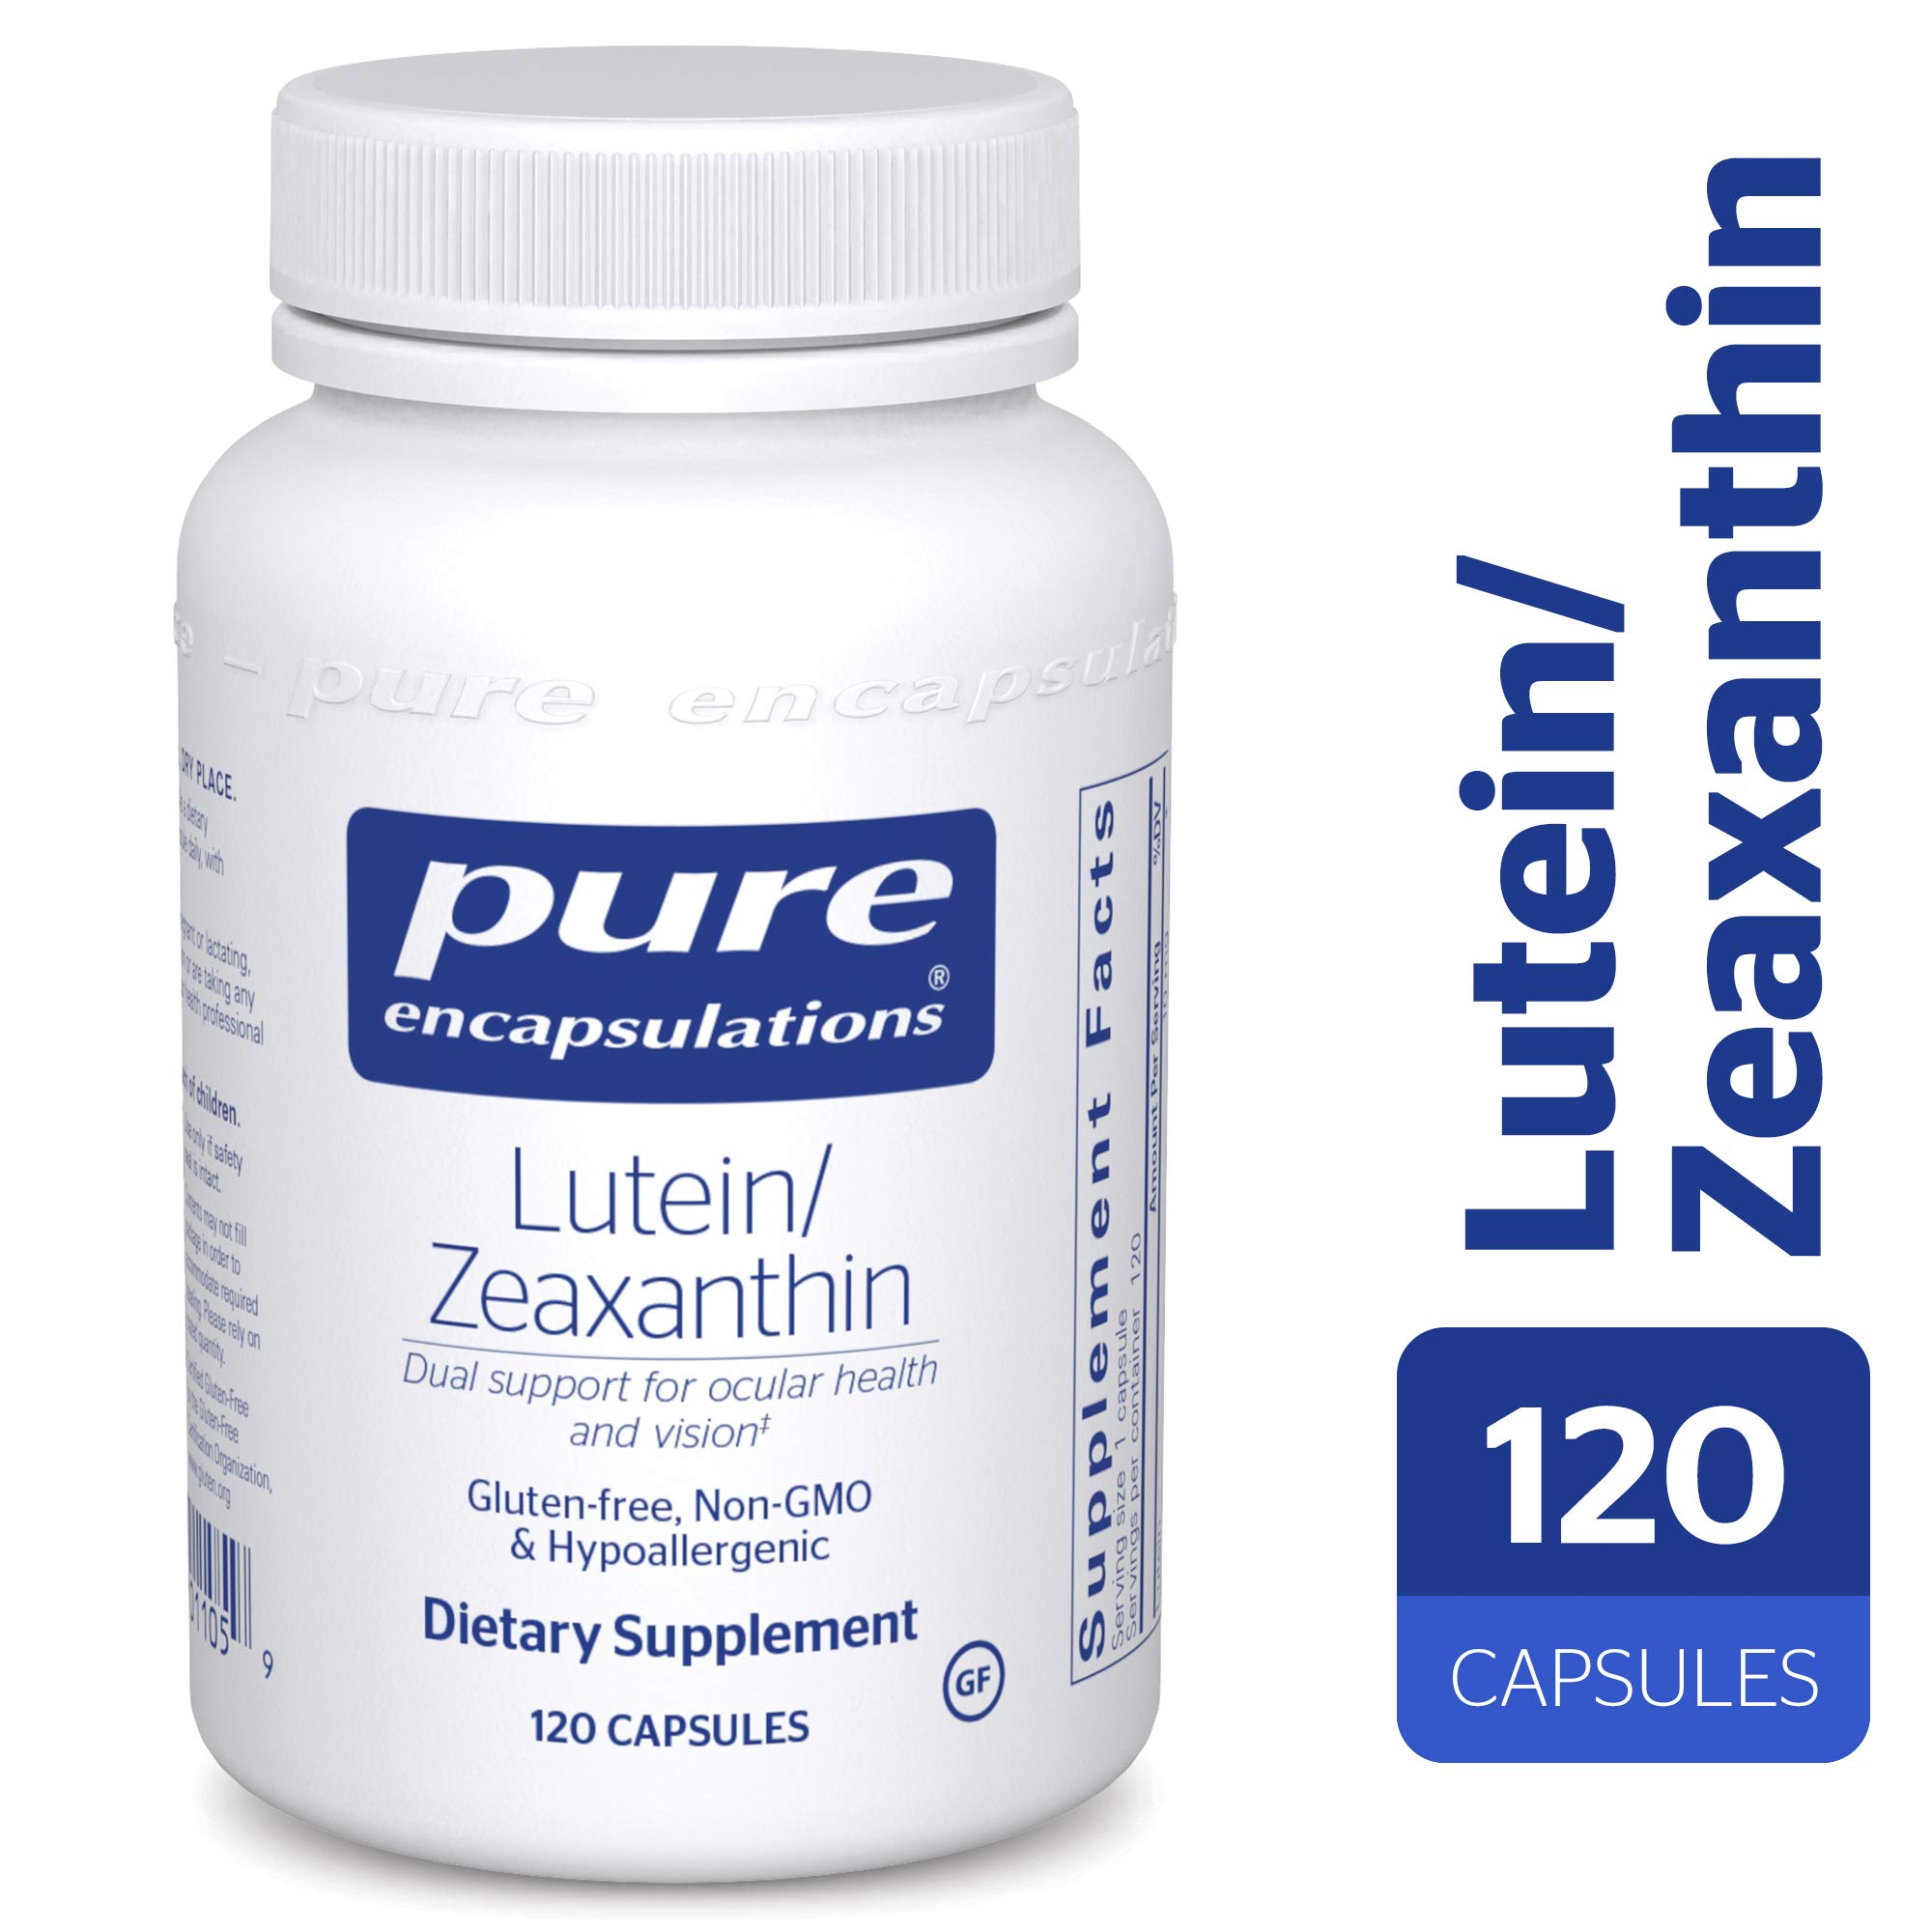 Pure Encapsulations - Lutein/Zeaxanthin - High Strength Blend for Macular Suport and Overall Visual Functioning* - 120 Capsules by Pure Encapsulations